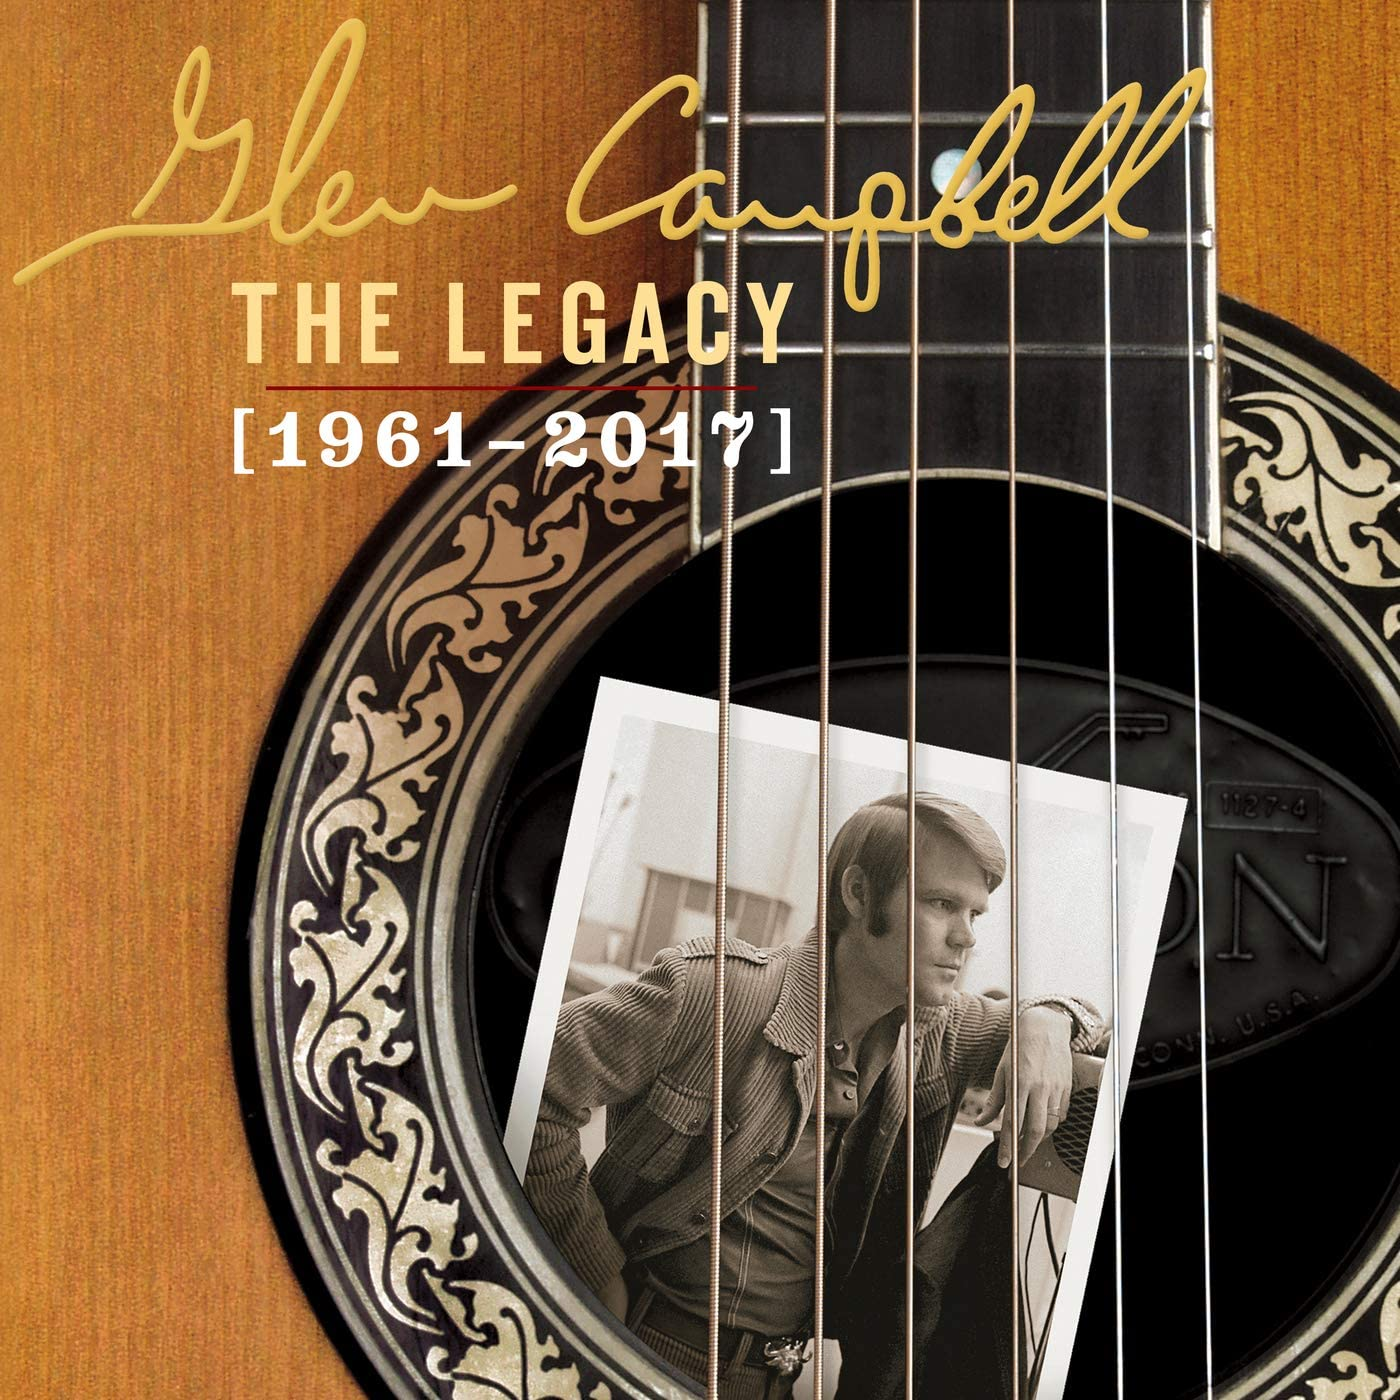 Campbell, Glenn/The Legacy: 1961-2017 (4CD Set) [CD]